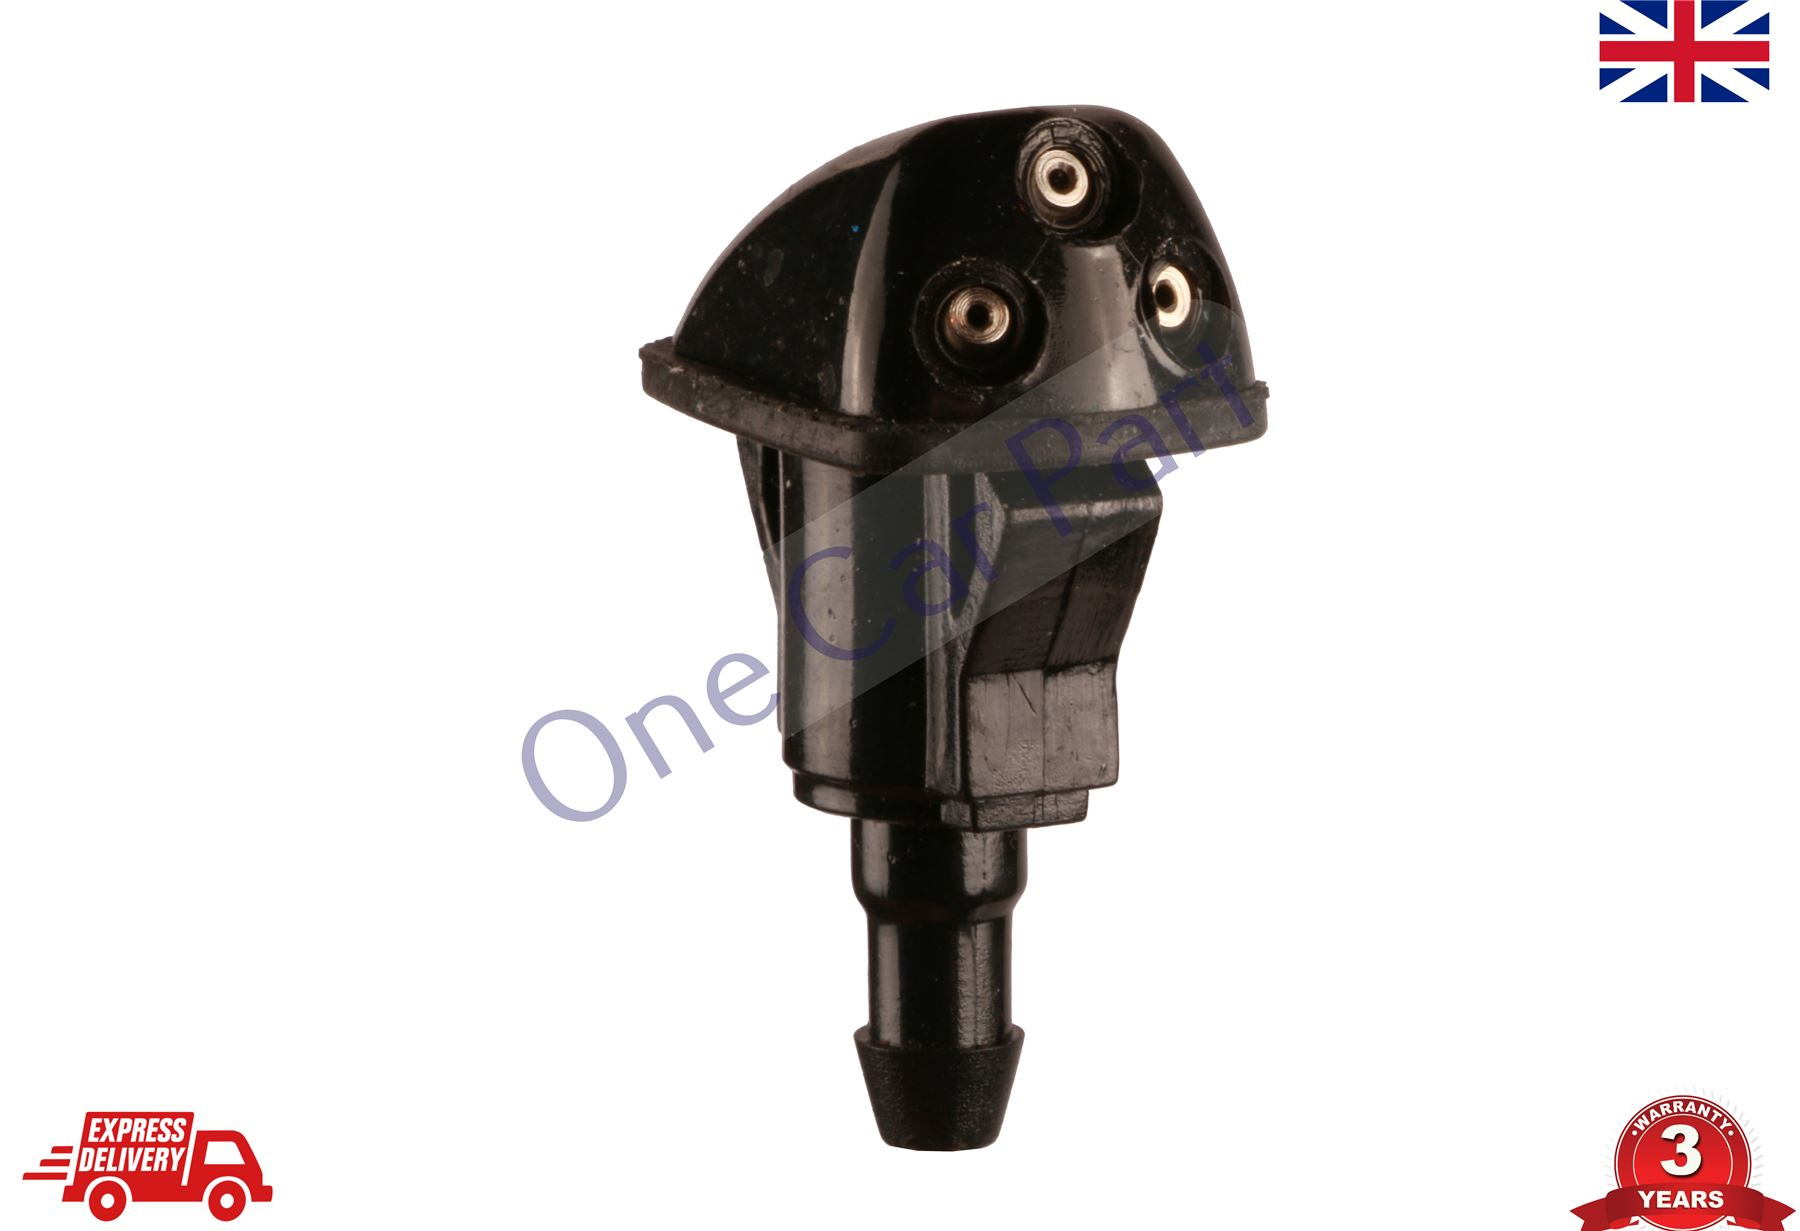 Spectra Premiumr Hyundai Accent 2013 Electrical Fuel Pump